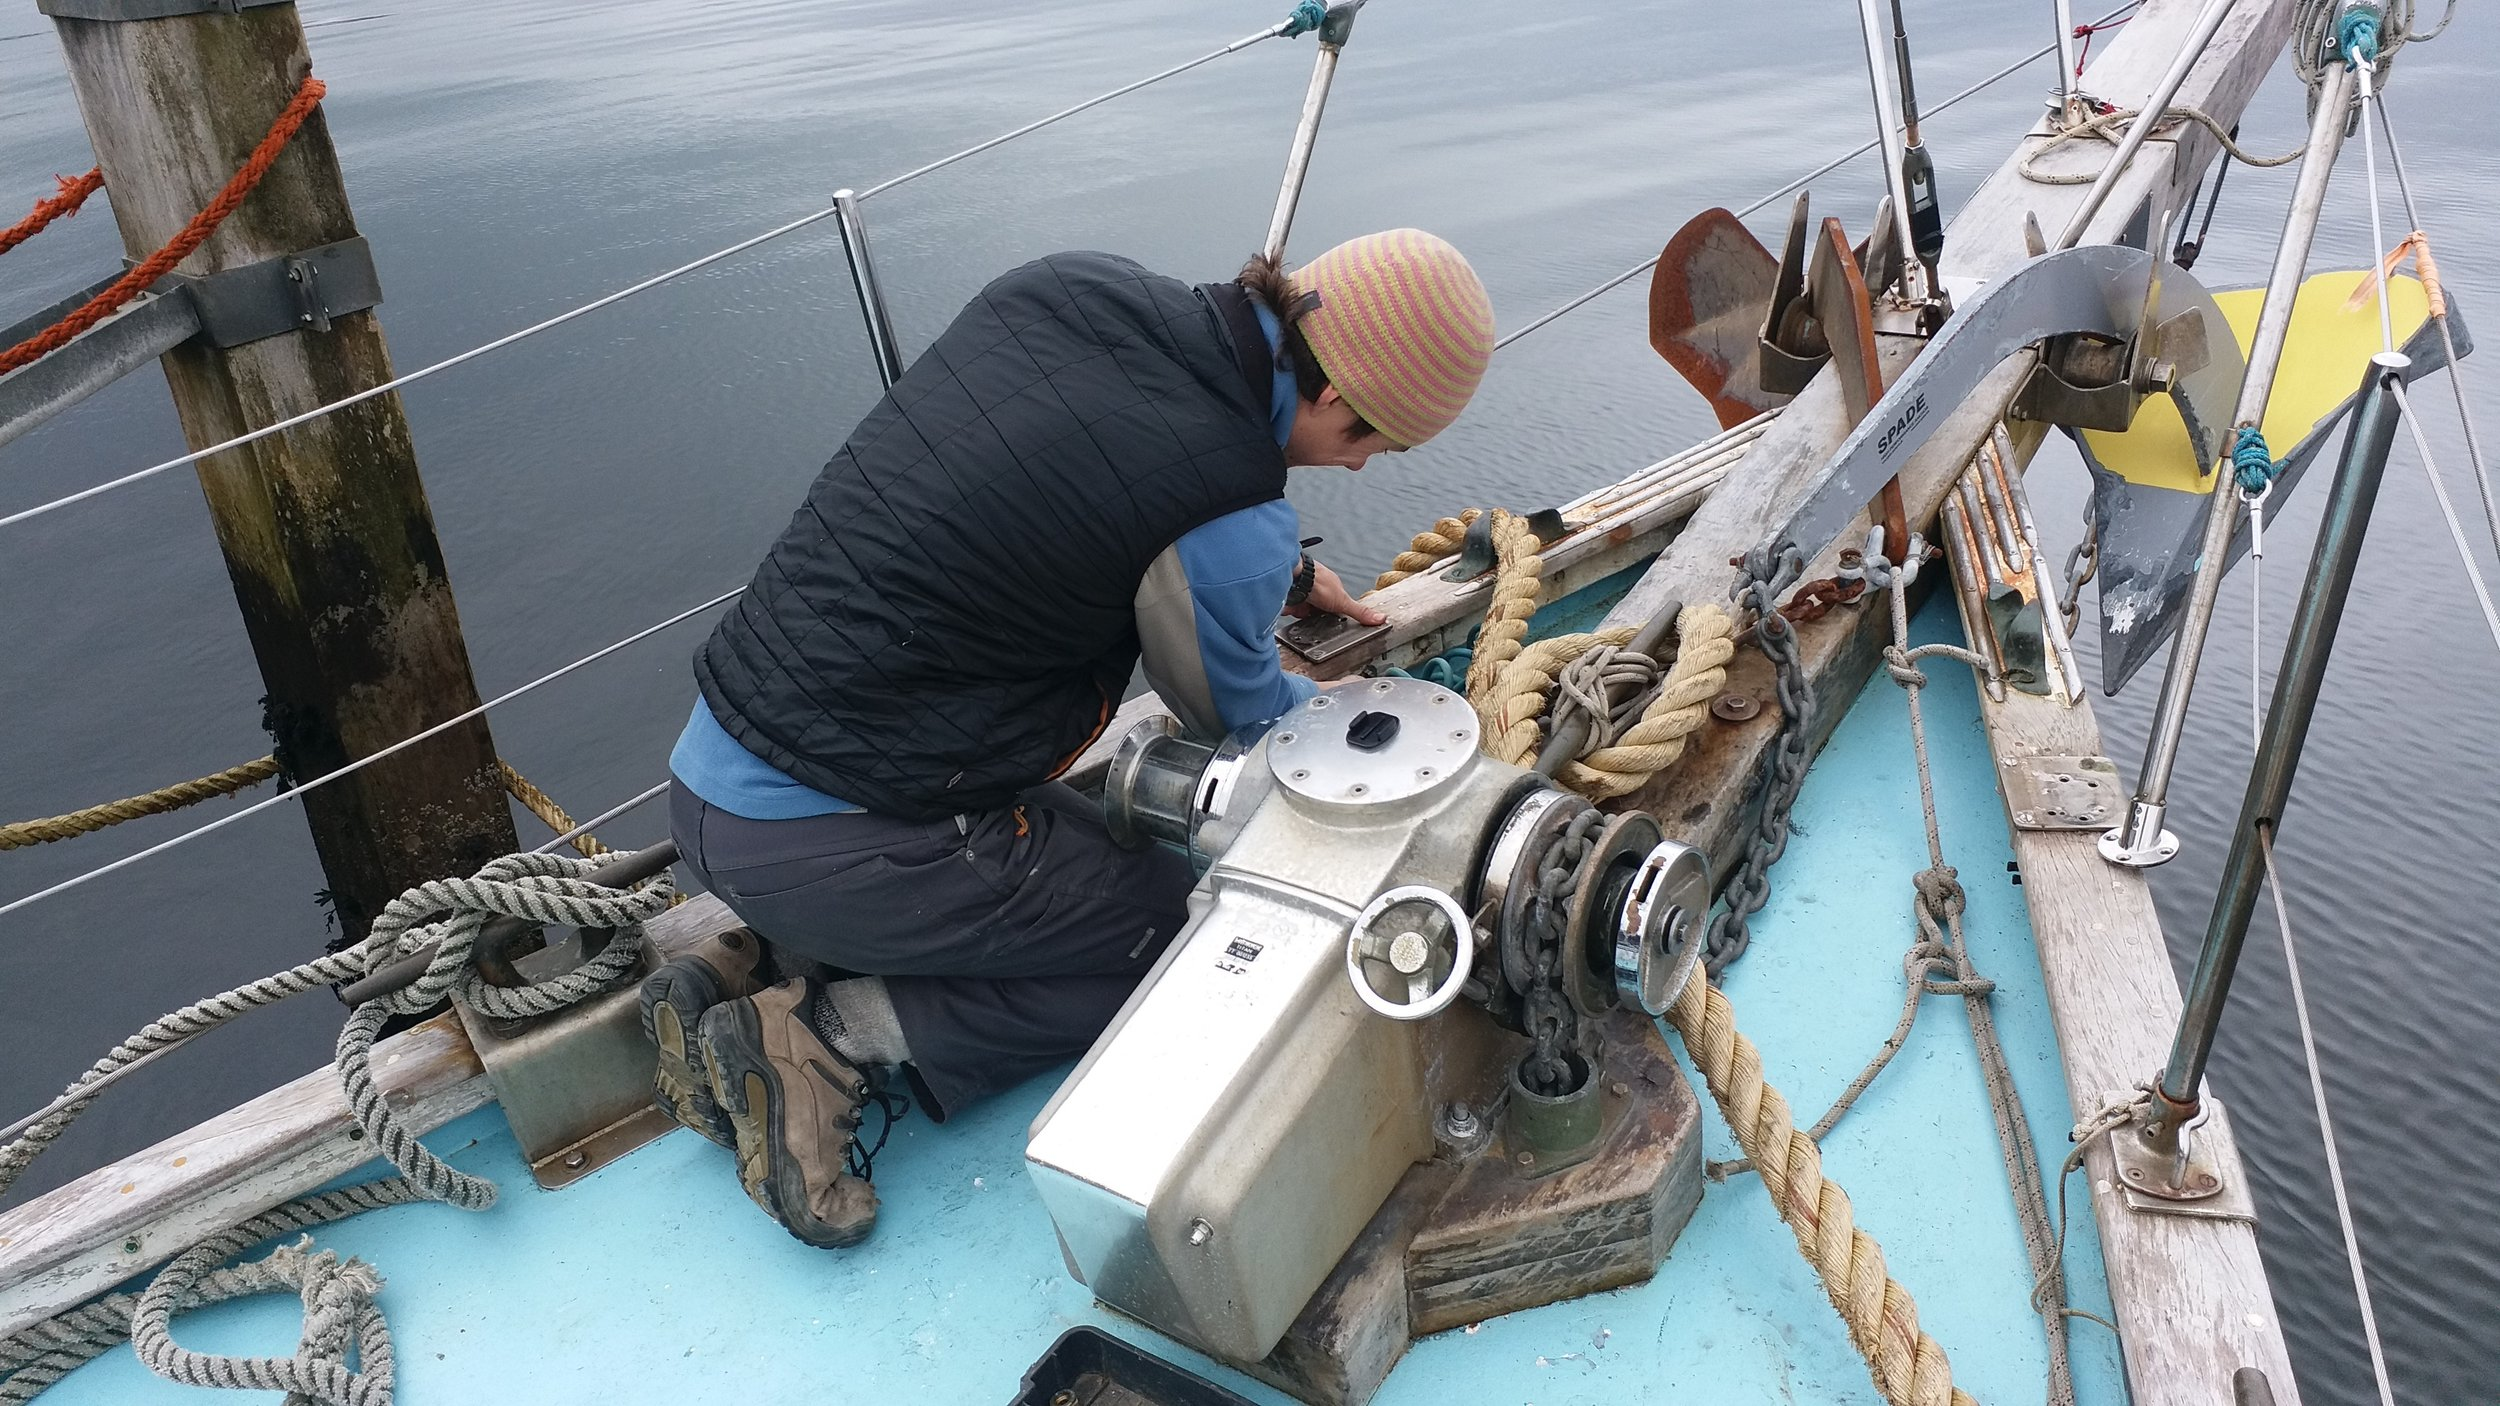 All hands on deck! Simon carrying out some maintenance.